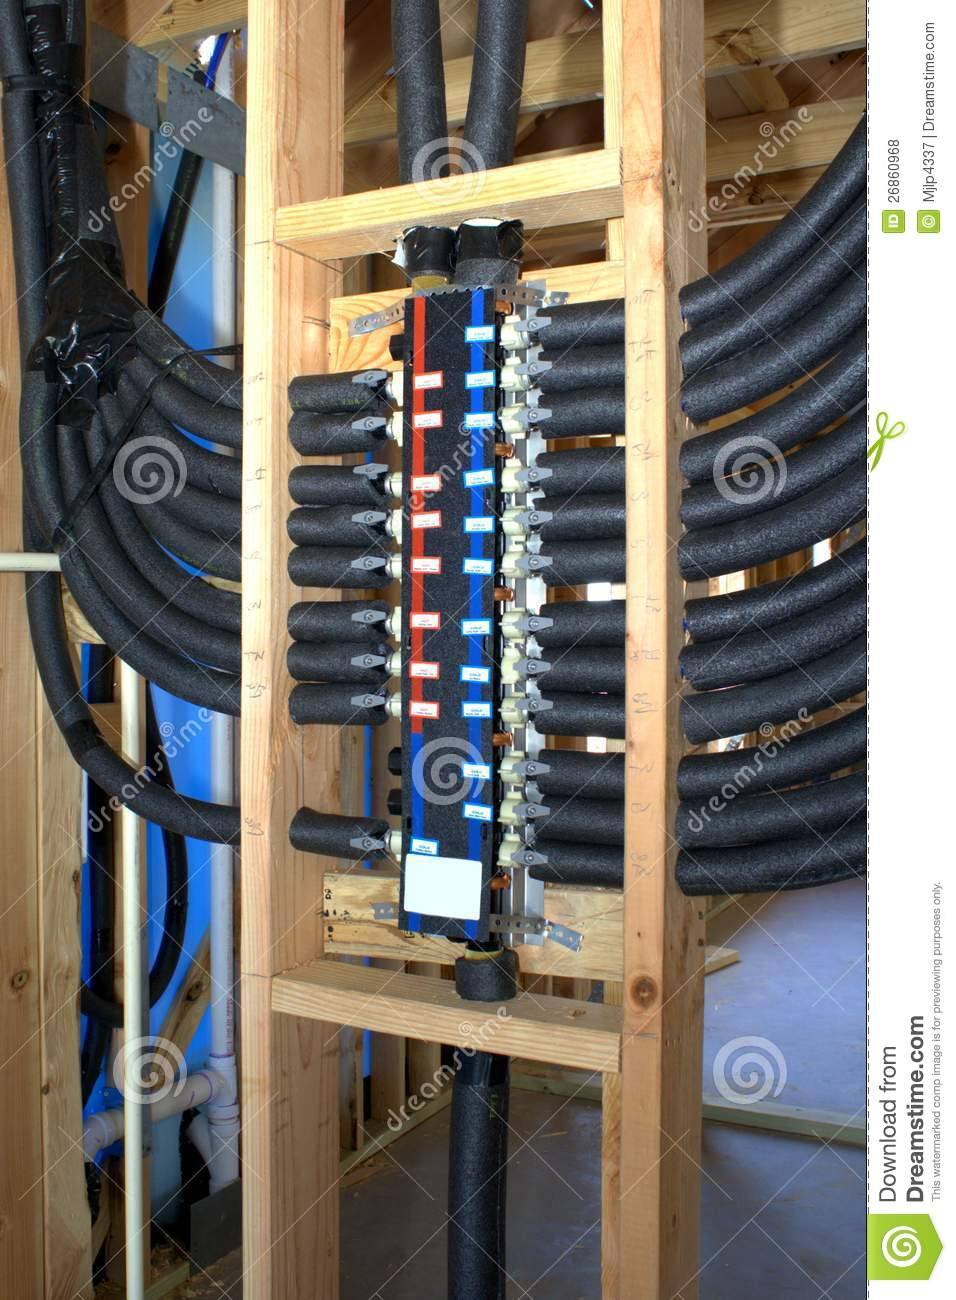 Modern plumbing royalty free stock photos image 26860968 for Plumbing for new construction